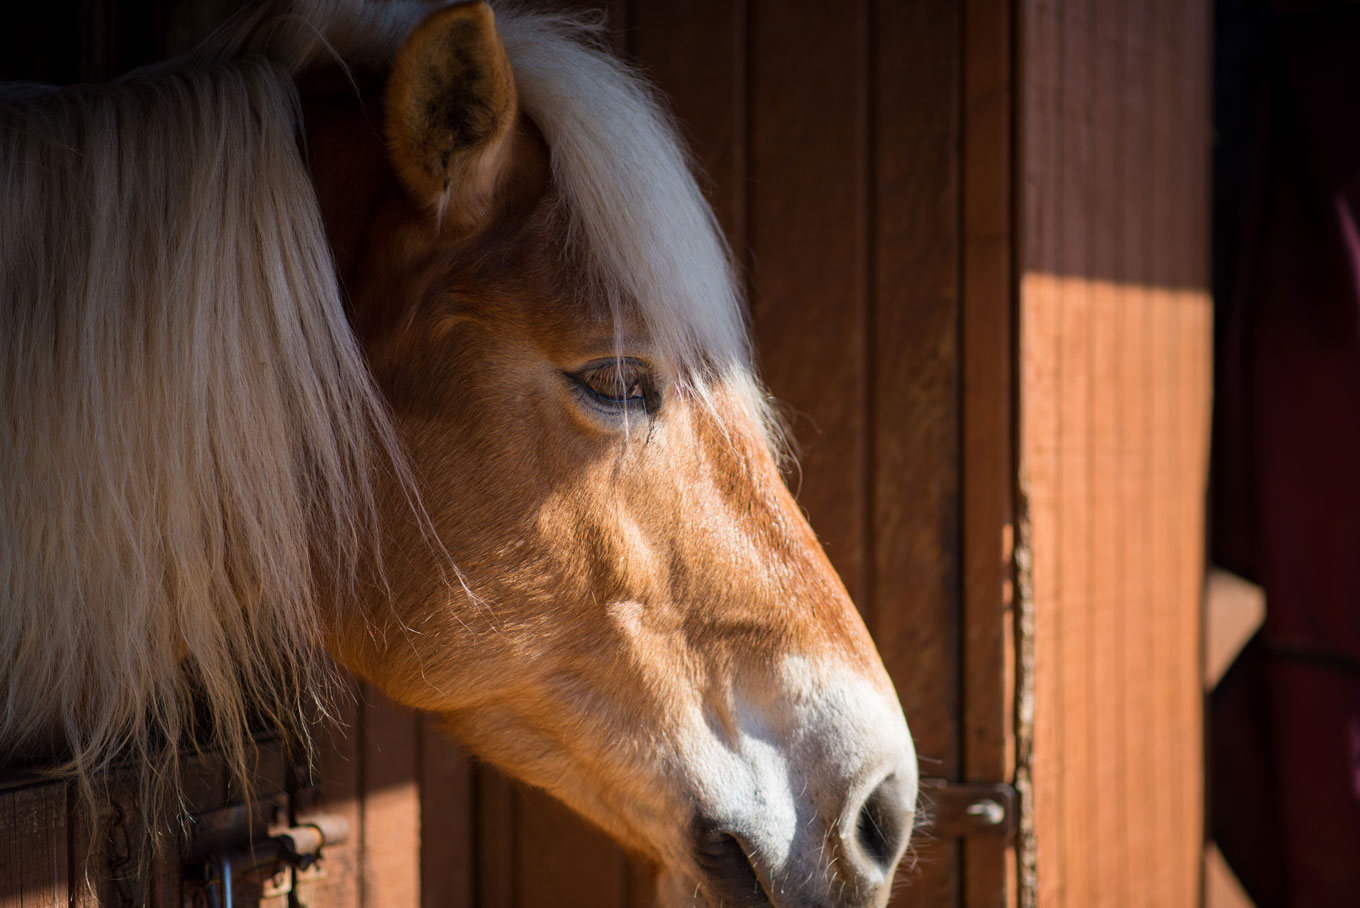 blonde horse in stall